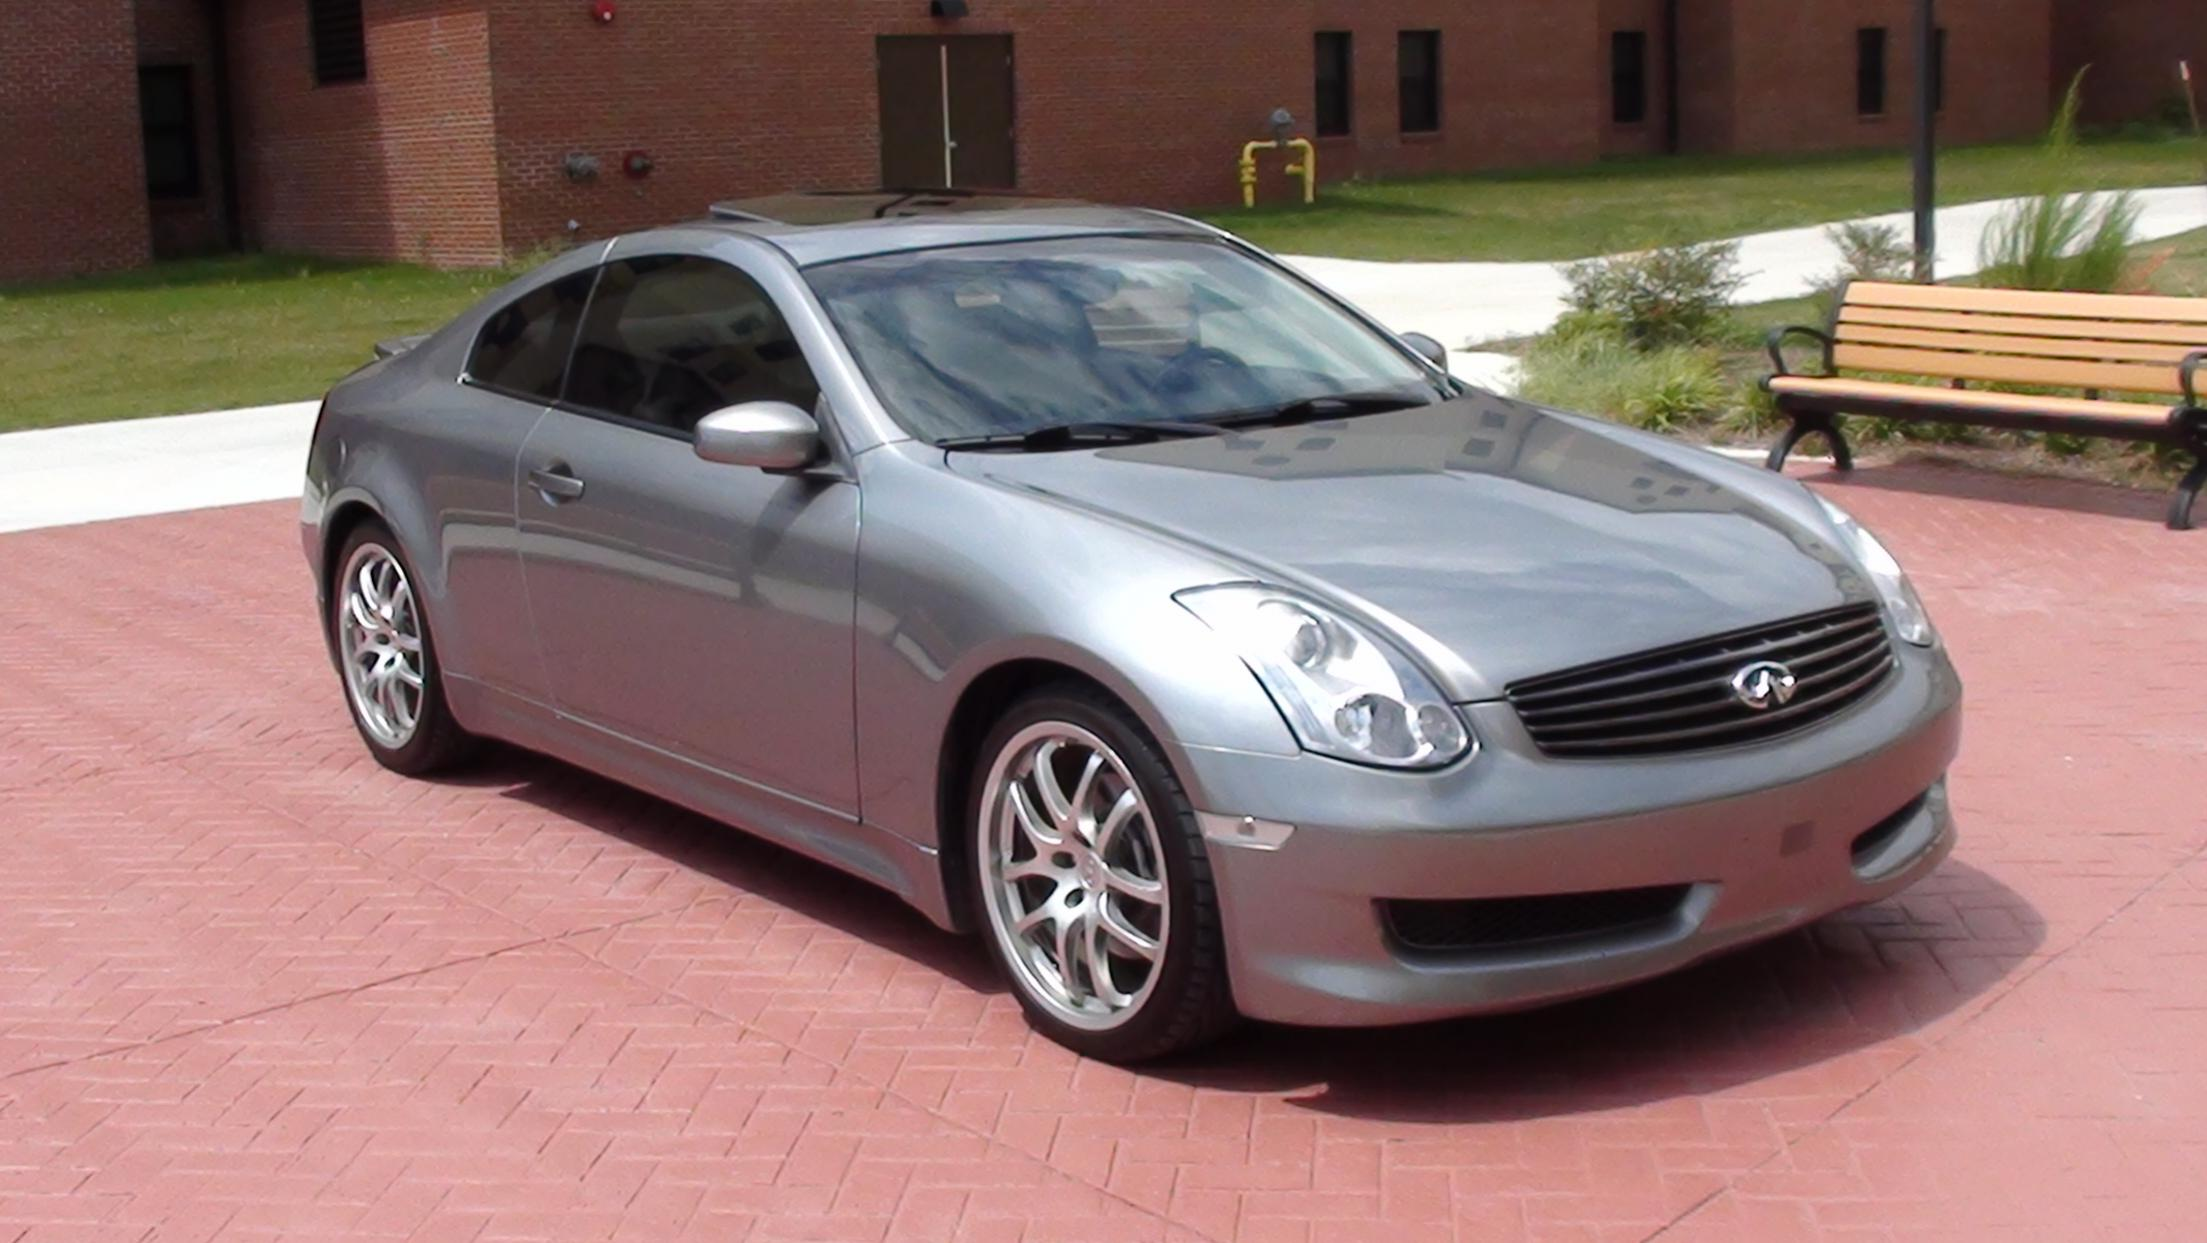 Fs G35 Coupe 19 Rays Fully Loaded Beautiful